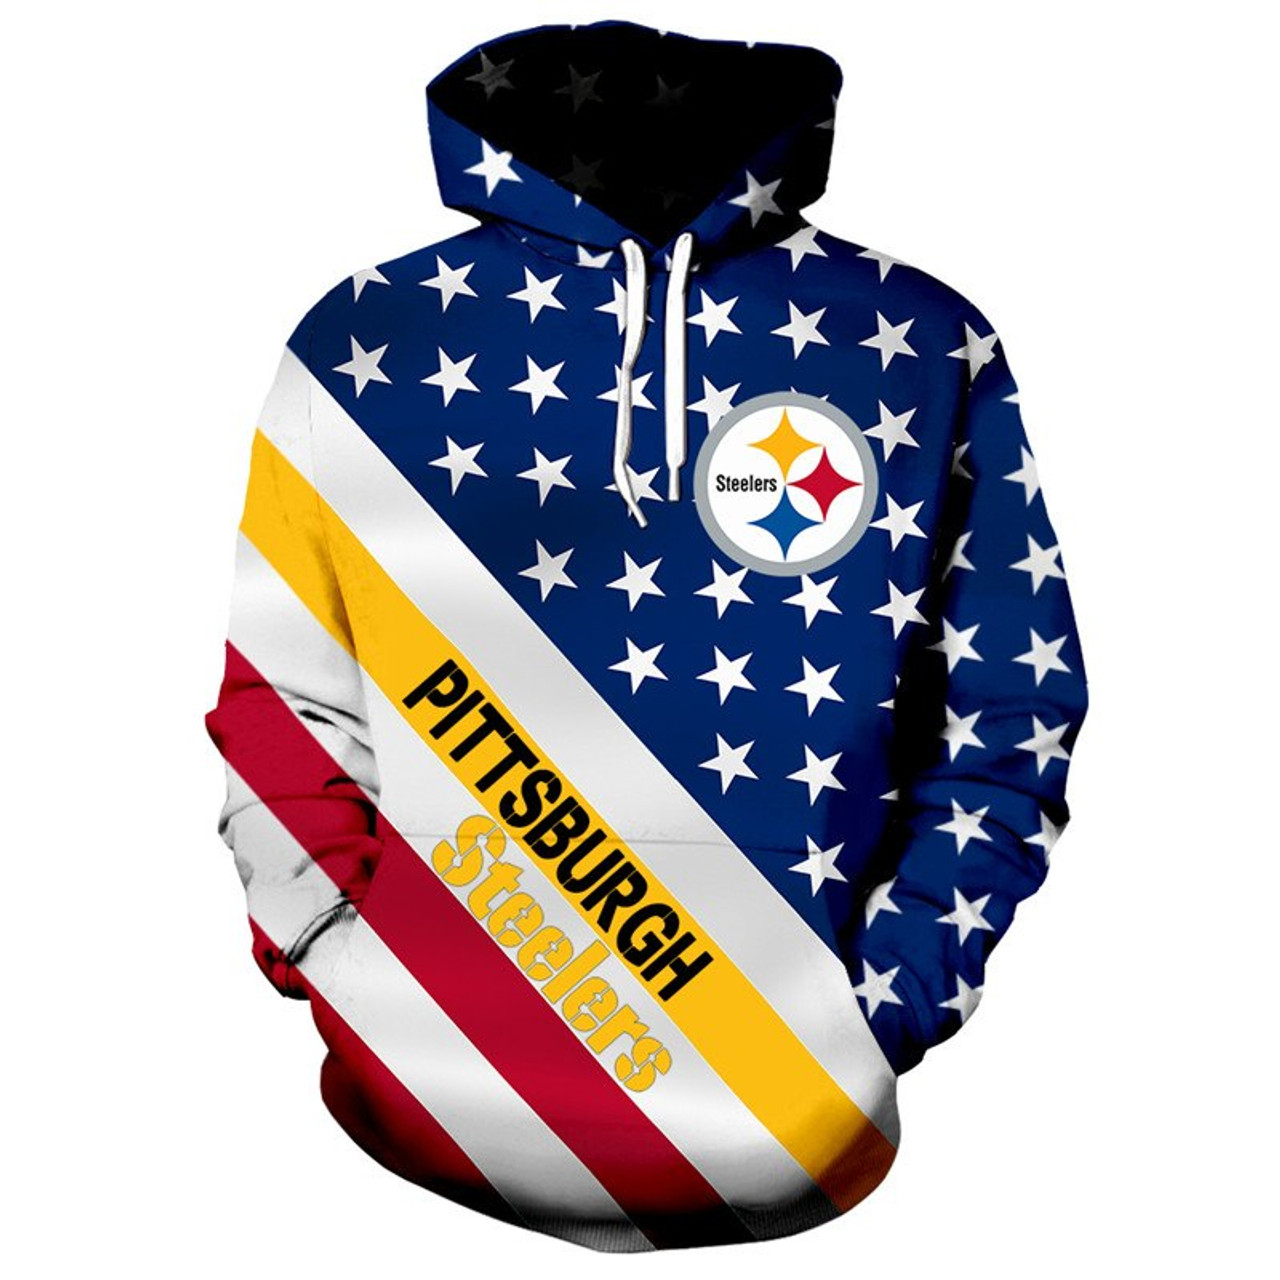 hot sales 0550a 9422f **(OFFICIALLY-LICENSED-N.F.L.PITTSBURGH-STEELERS/3D-GRAPHIC-PRINTED-PATRIOTIC-STARS  & STRIPES-PULLOVER-HOODIES/NICE-DETAILED-PREMIUM-CUSTOM-3D-GRAPHIC...